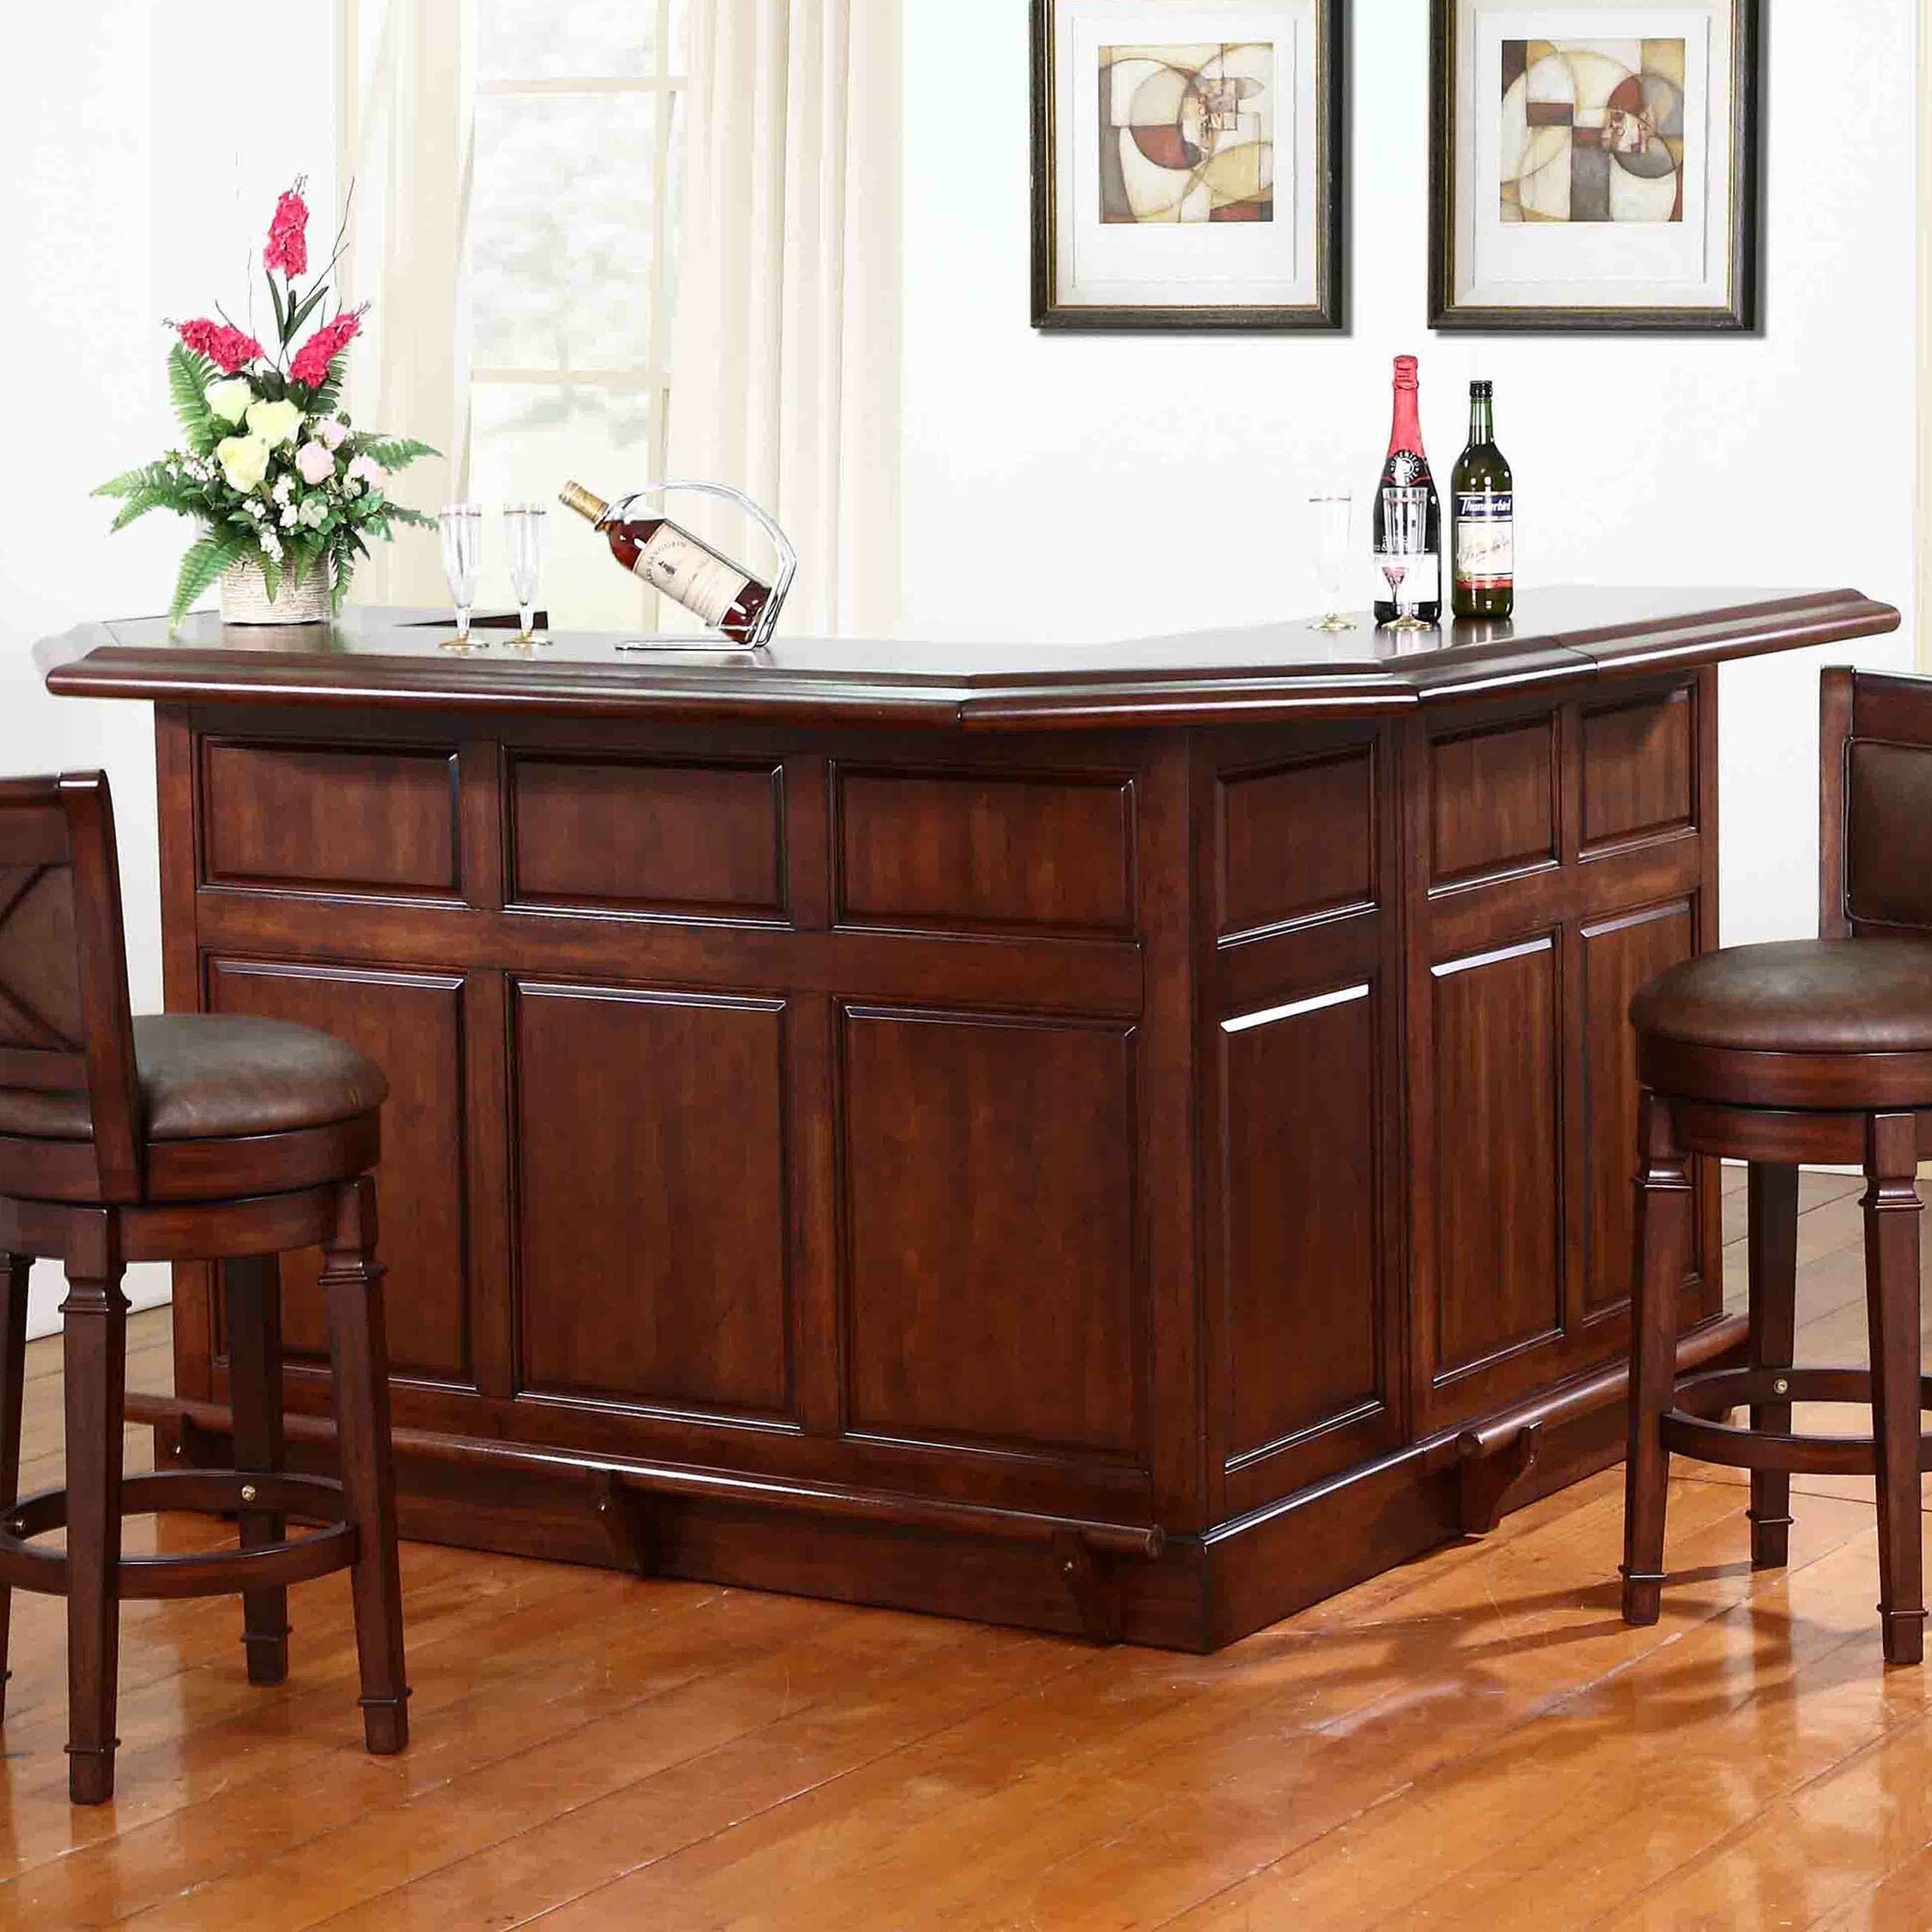 Eci furniture belvedere home bar ebay for Home bar furniture on ebay